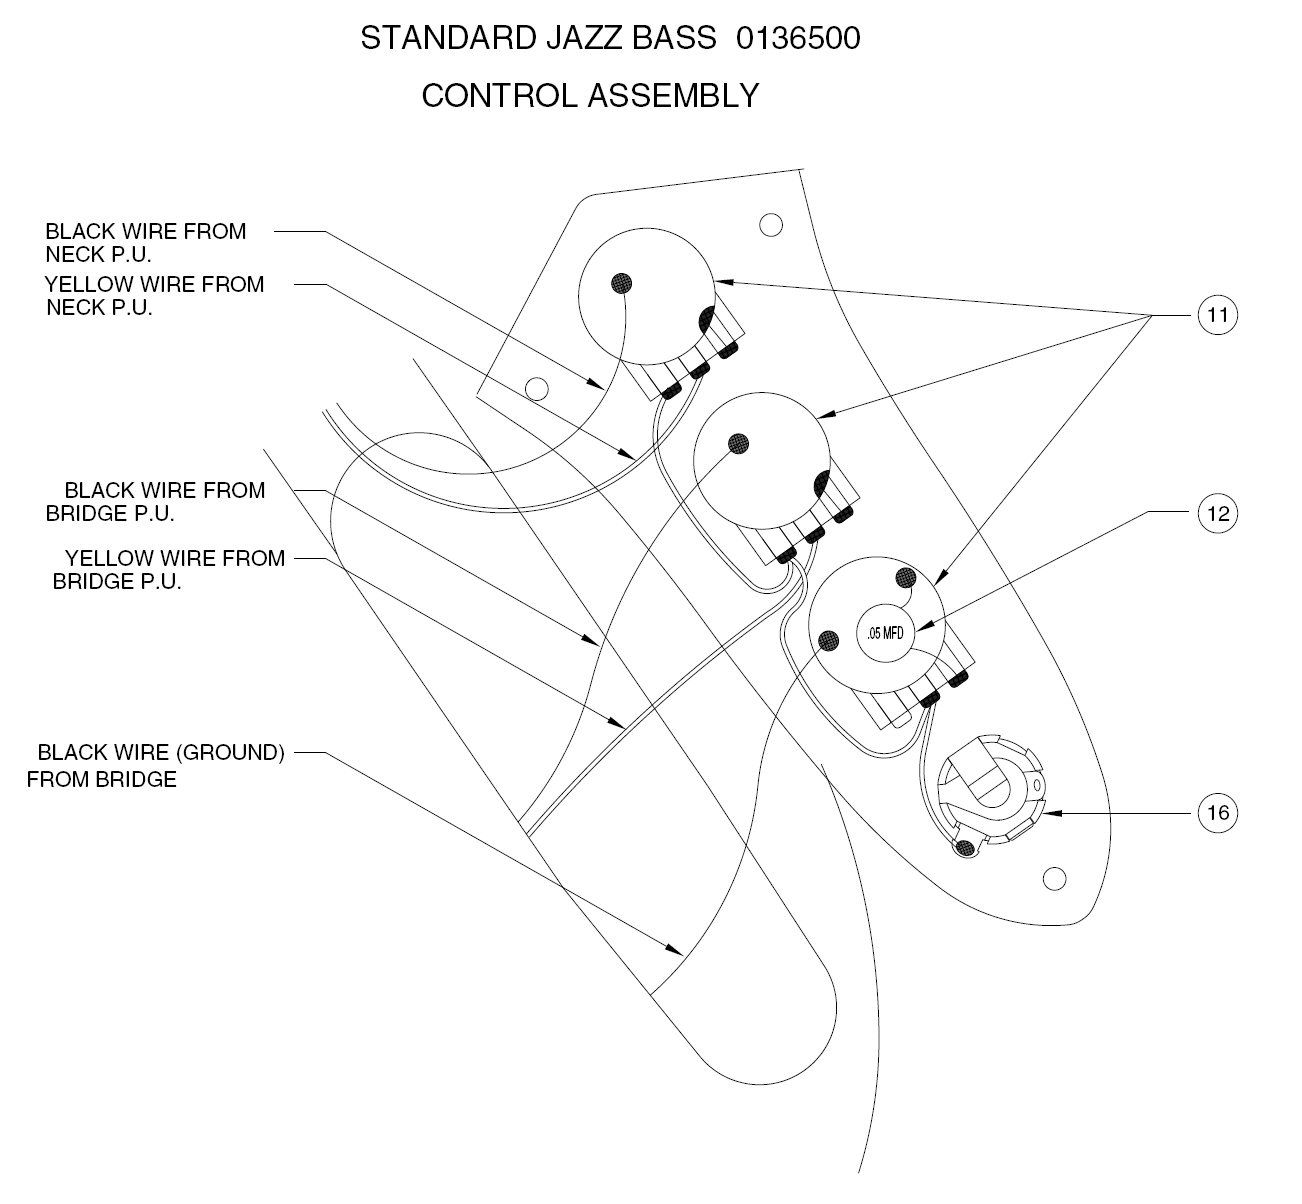 Modern jazz bass schematic gift wiring diagram ideas blogitia car alternator wiring diagram wiring diagrams sunburst jazz bass with duncan basslines asfbconference2016 Images